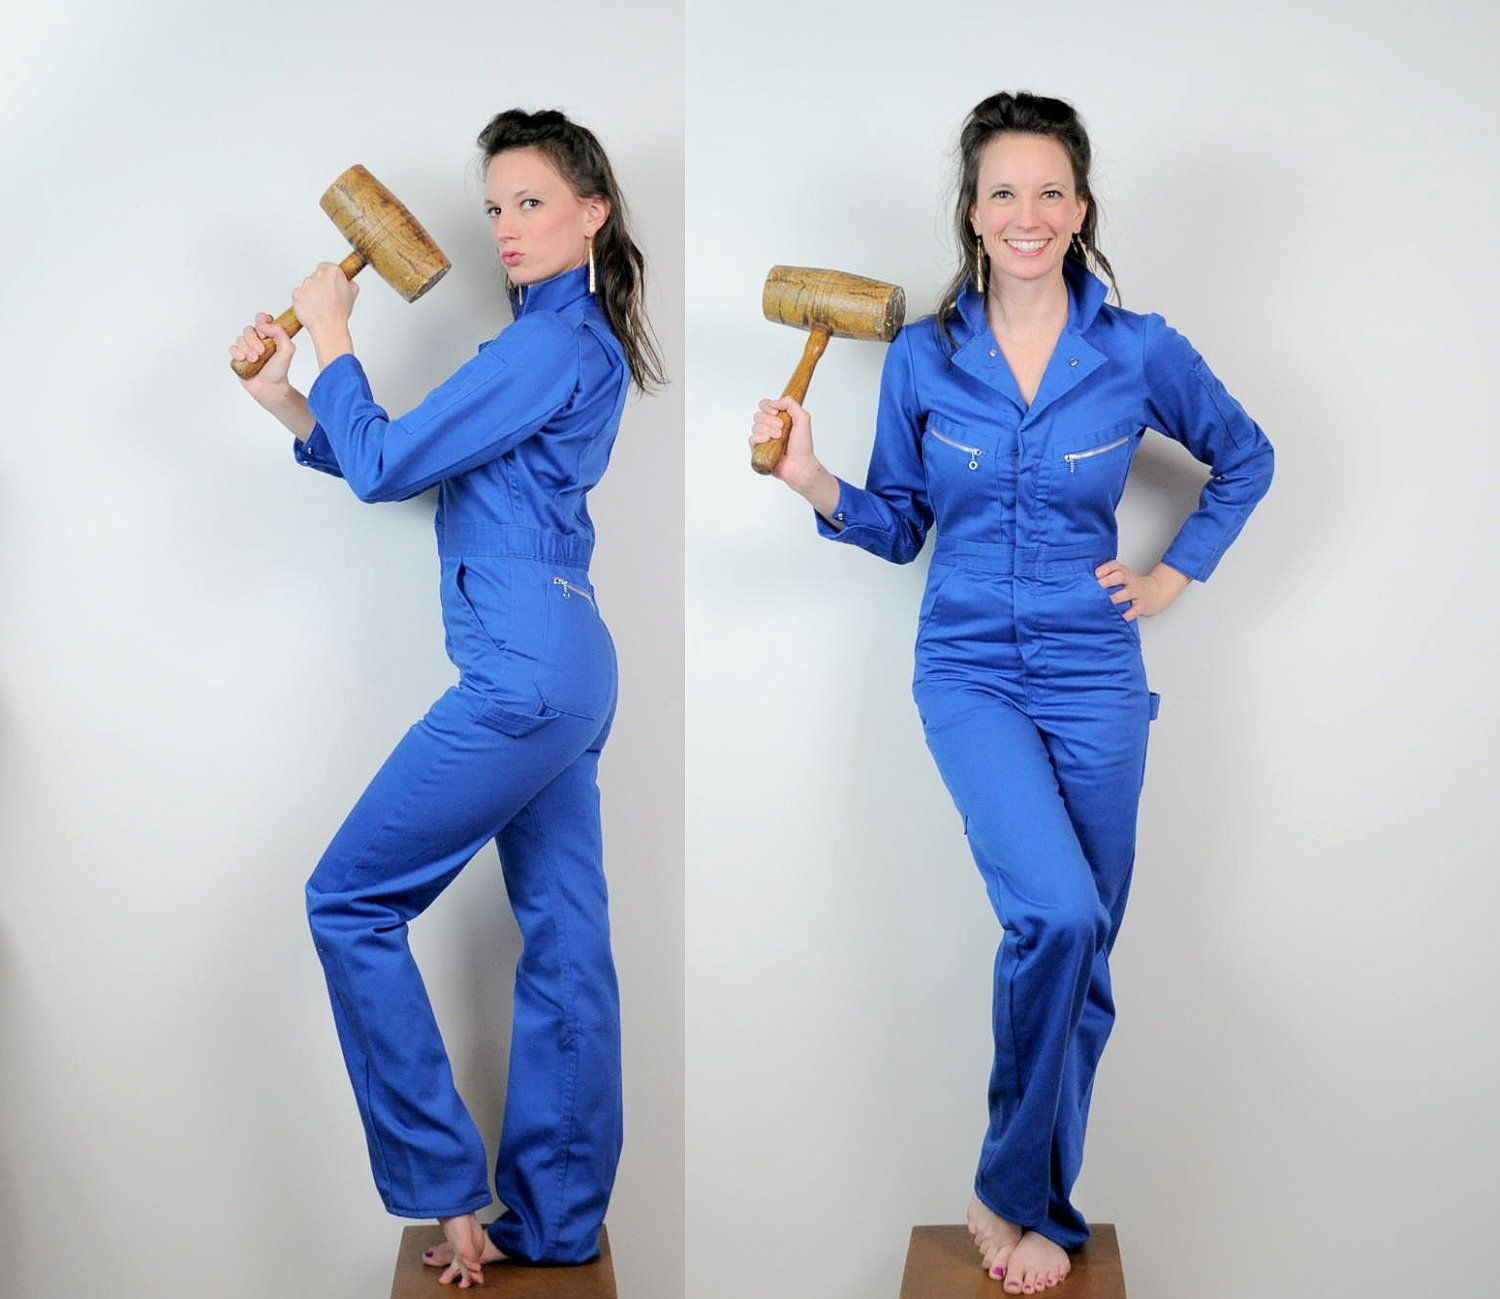 dfdfdadd223 The coveralls are simply wonderful as they provide protection from head to  toe. For all those jobs which are messy and are labor intensive